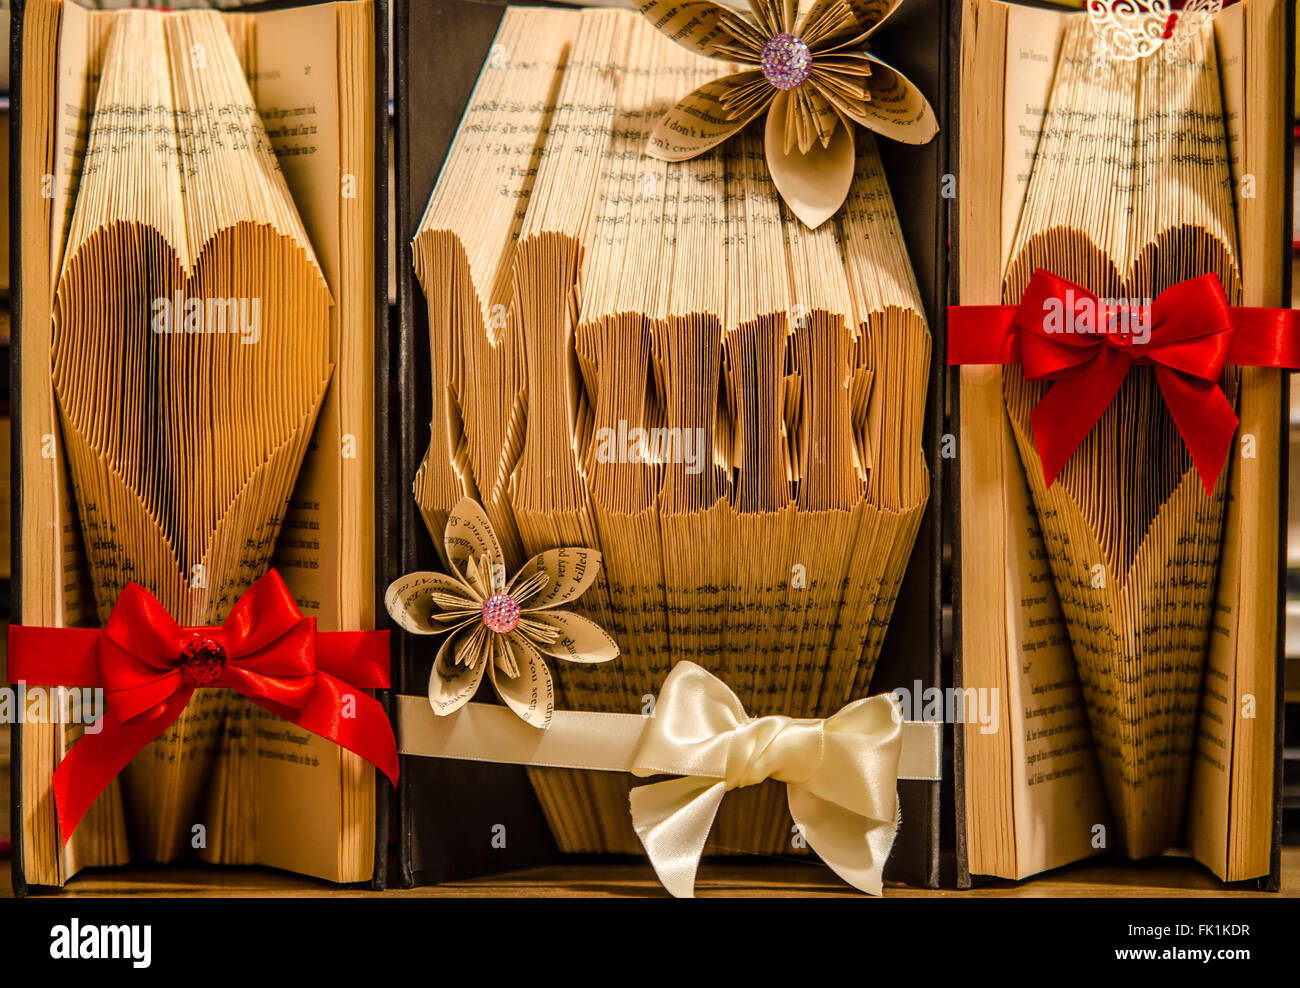 Book Folding. Art created by folding the pages of a hardback book to form images or words. They can be decorated - Stock Image